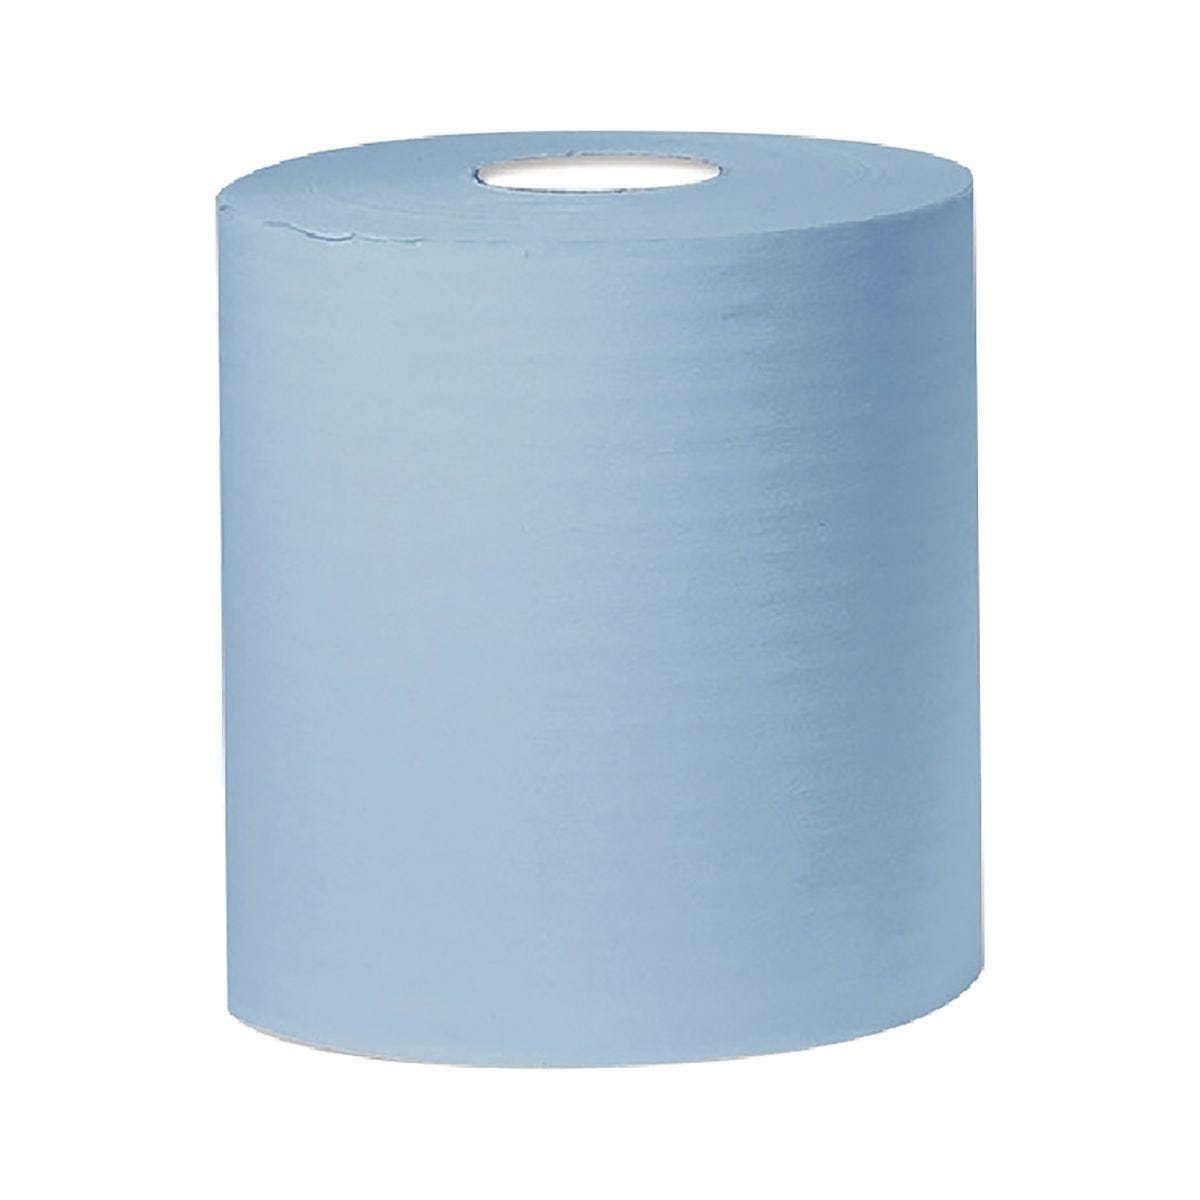 Compare prices for 2Work 2 Ply Centrefeed Roll 150 Metres Pack of 6, Blue